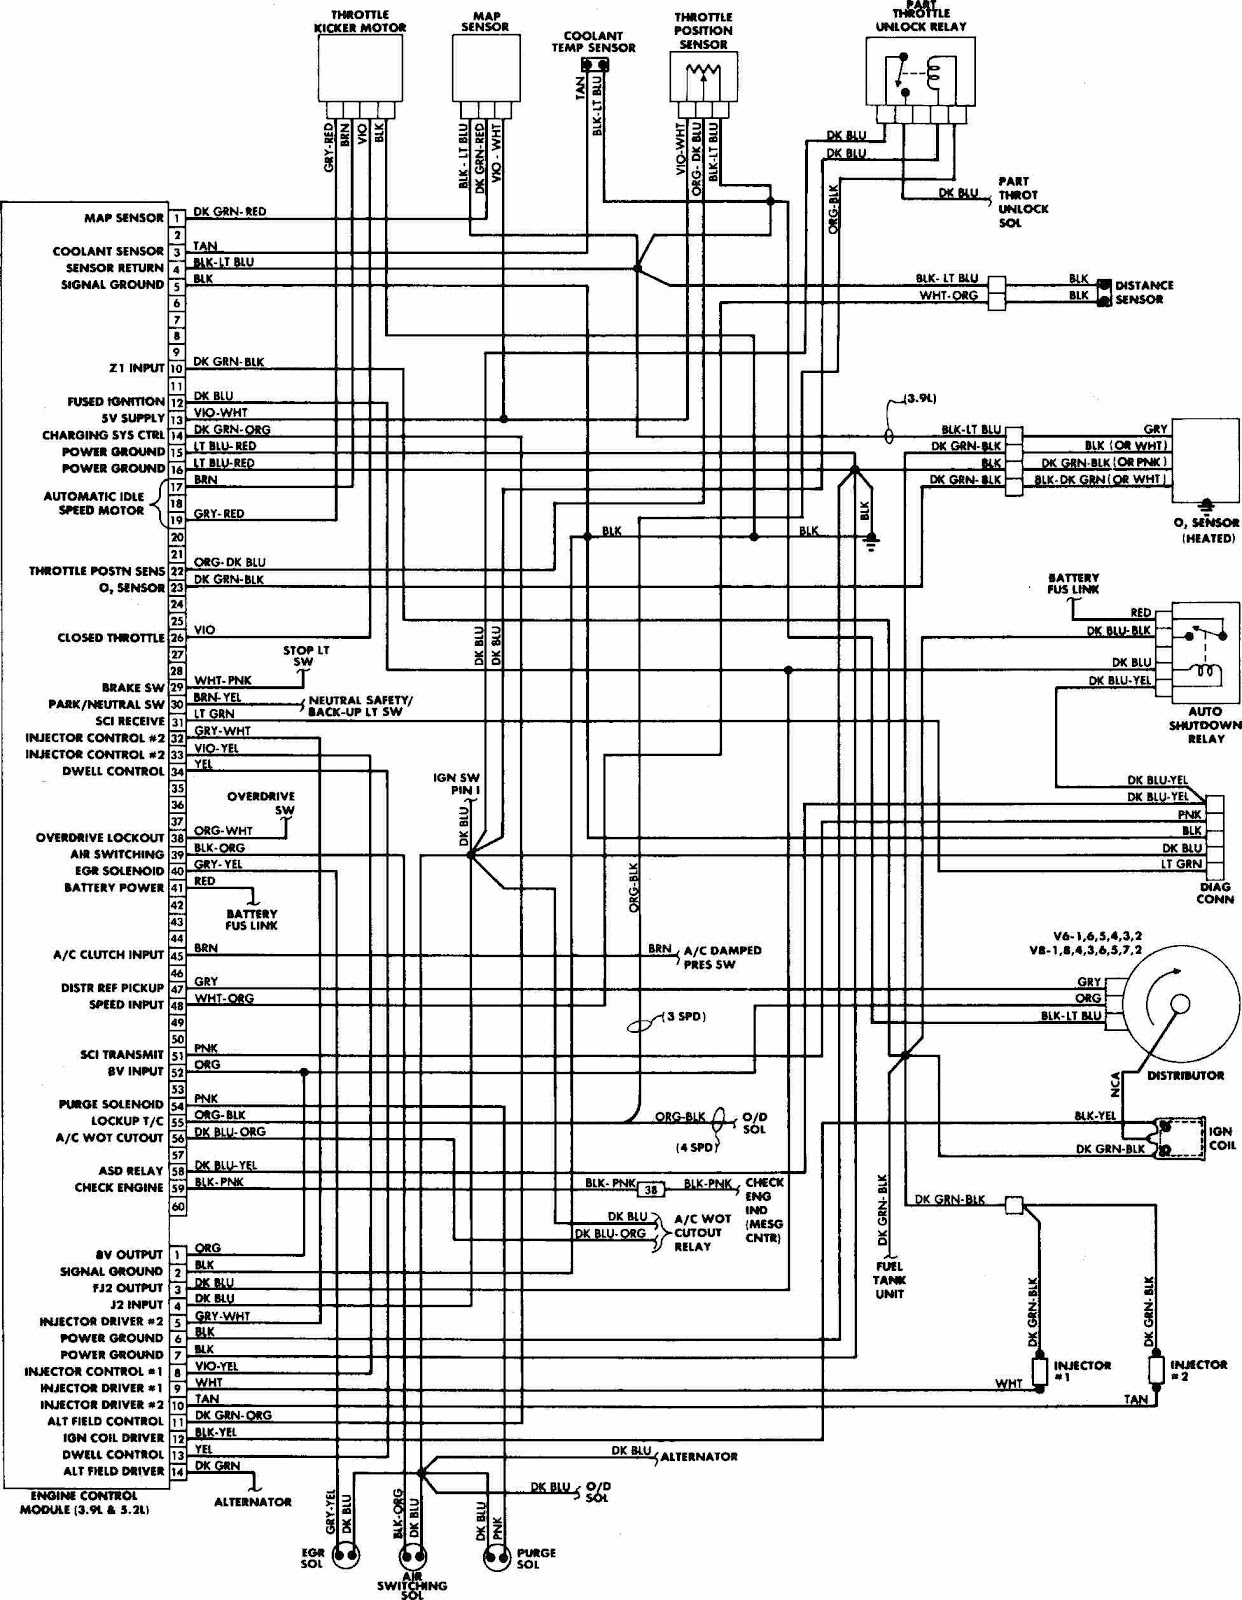 Dodge truck engine schematic free